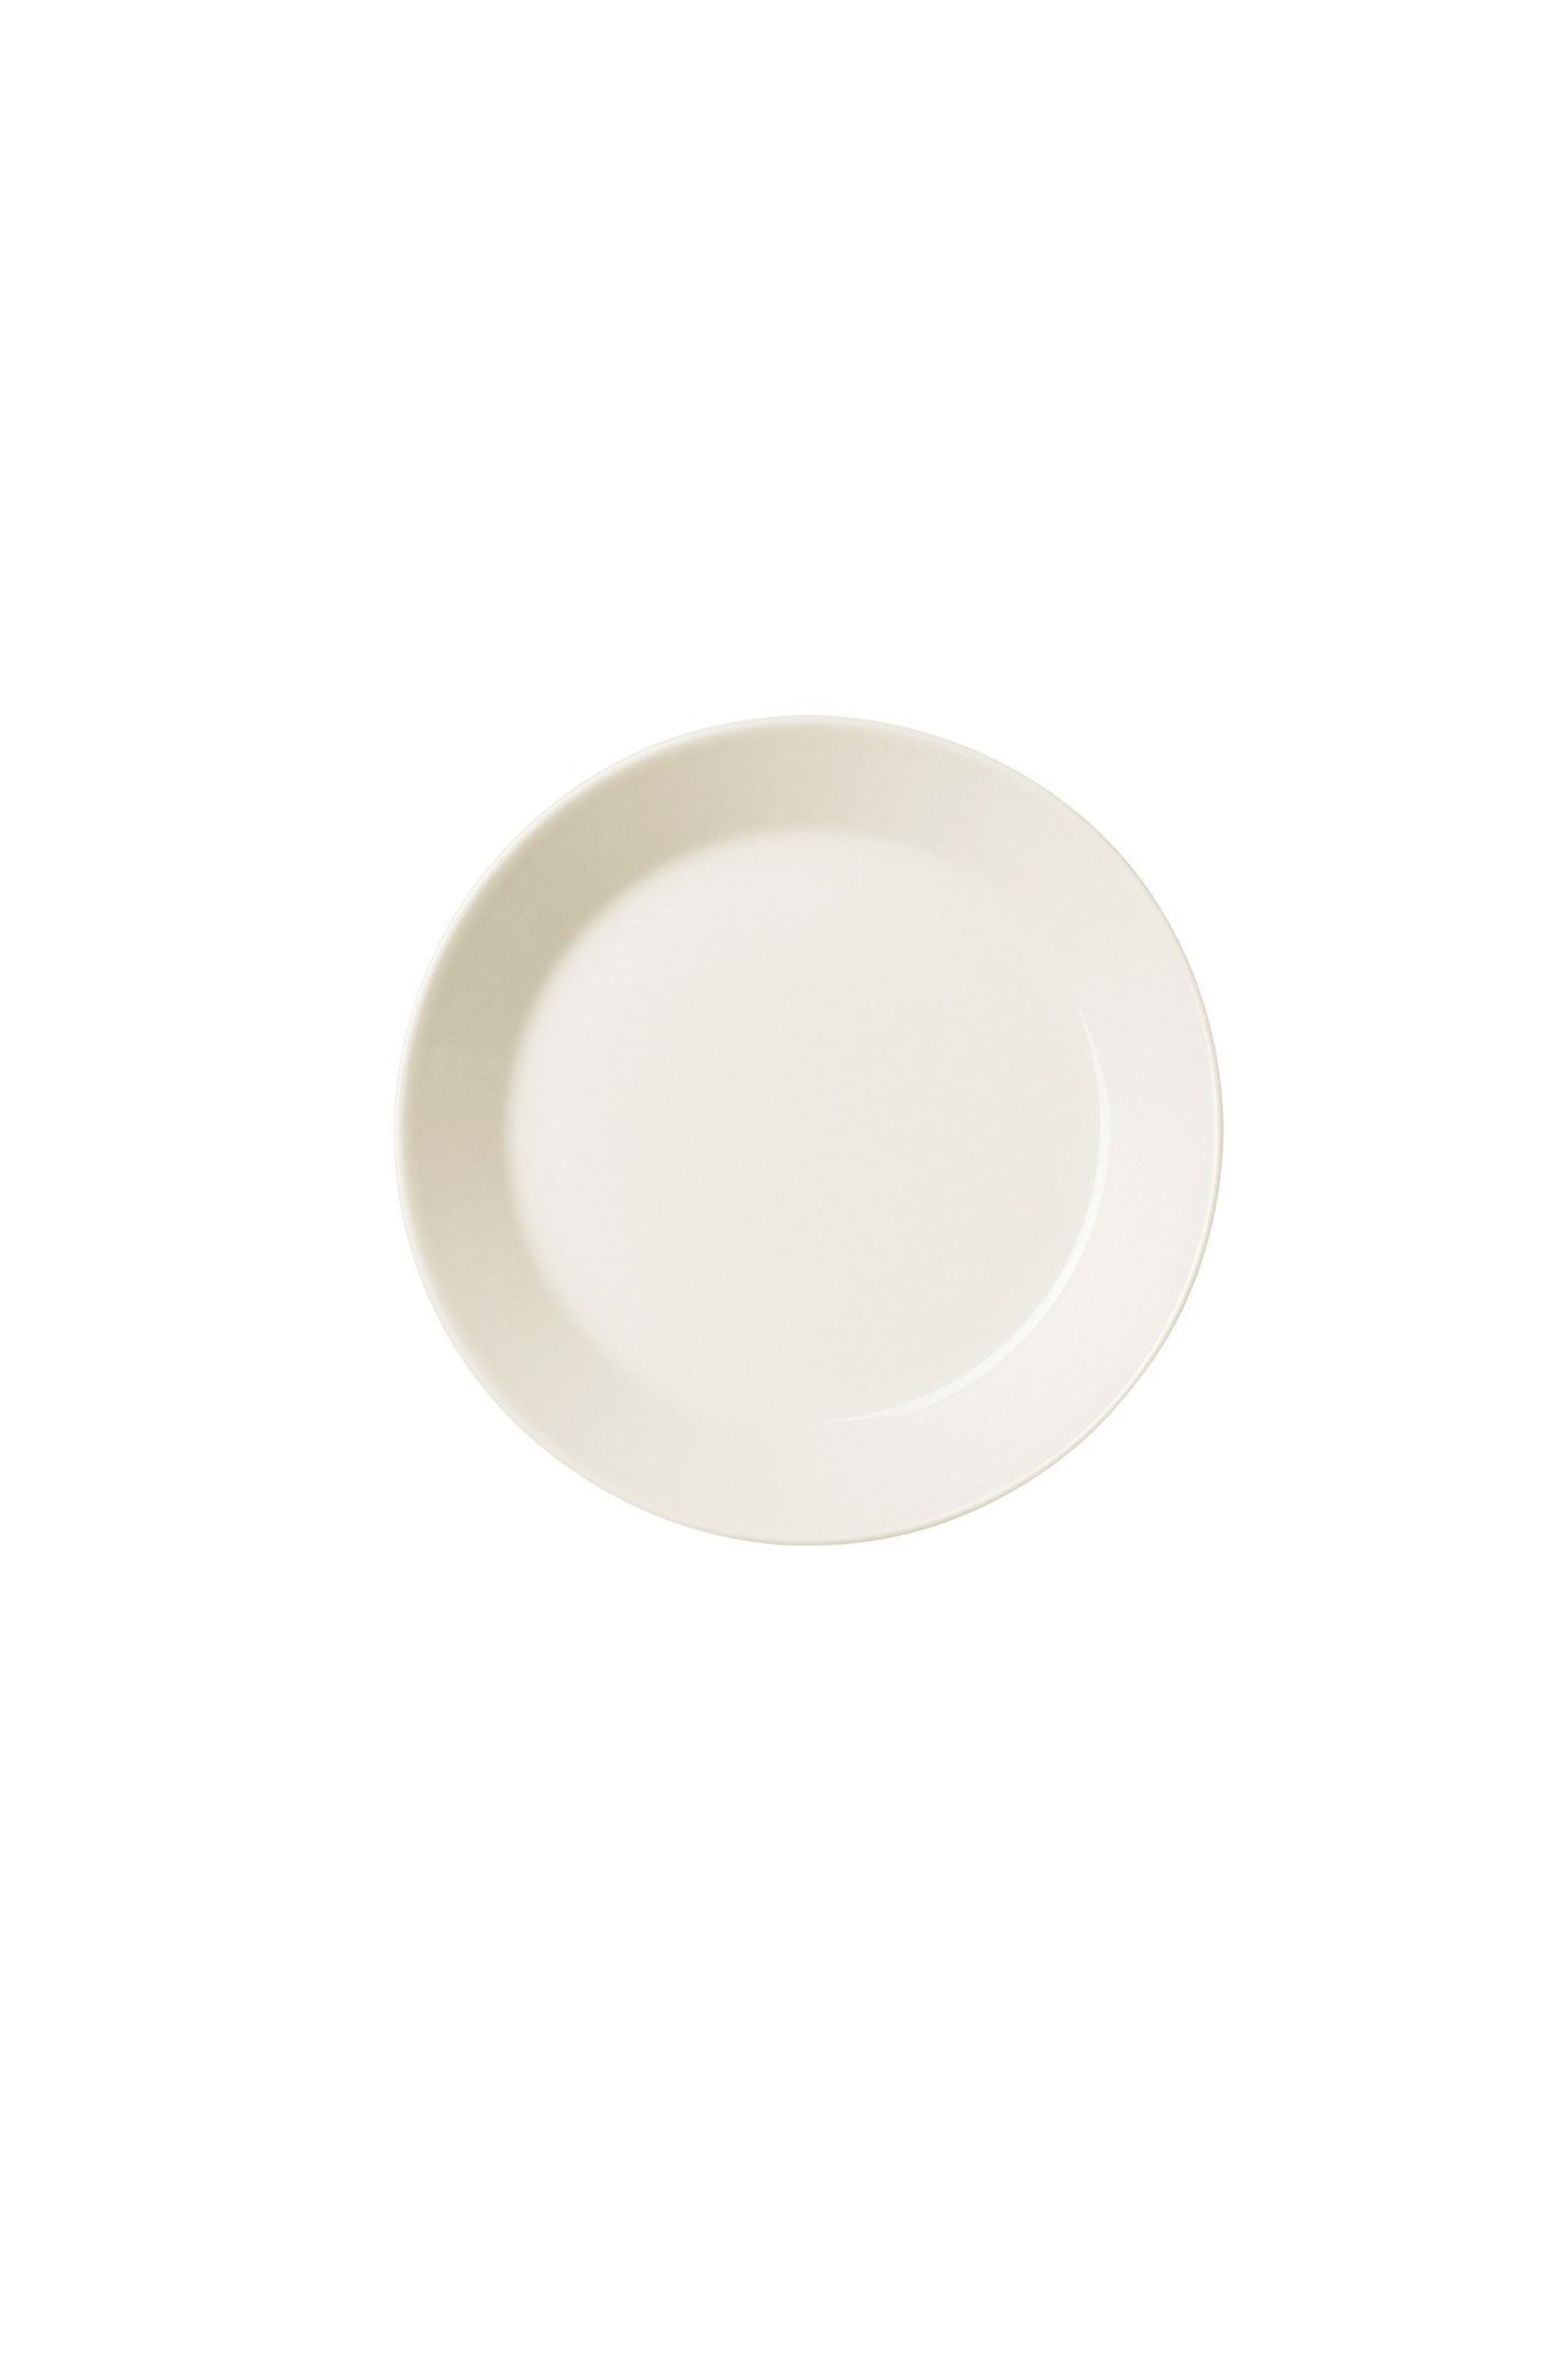 Iittala, Teema Bread and Butter Plate, assorted colors, White- Placewares